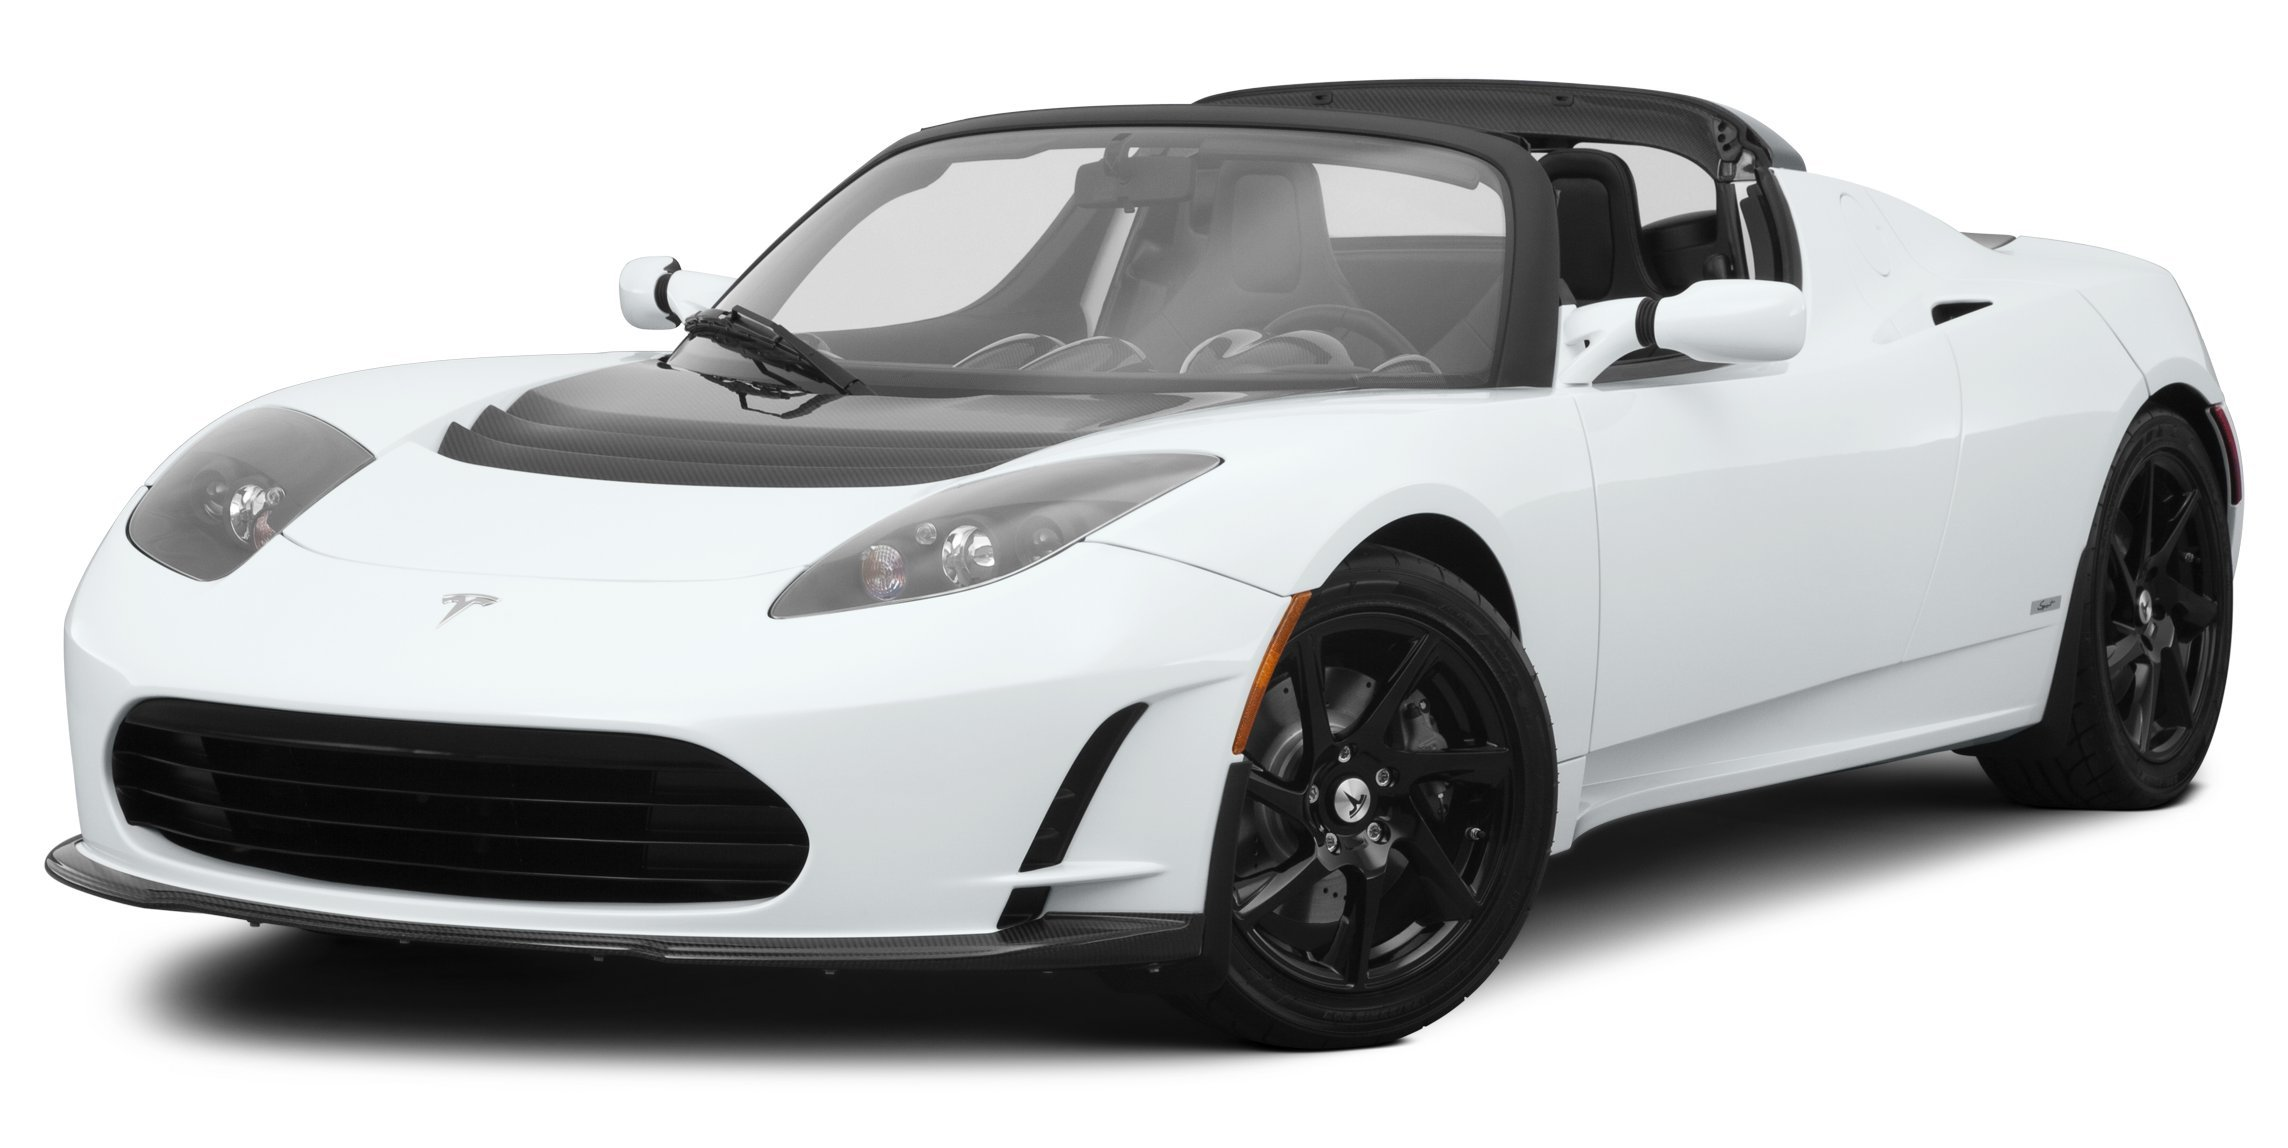 Tesla Model S Specs >> Amazon.com: 2010 Tesla Roadster Reviews, Images, and Specs: Vehicles